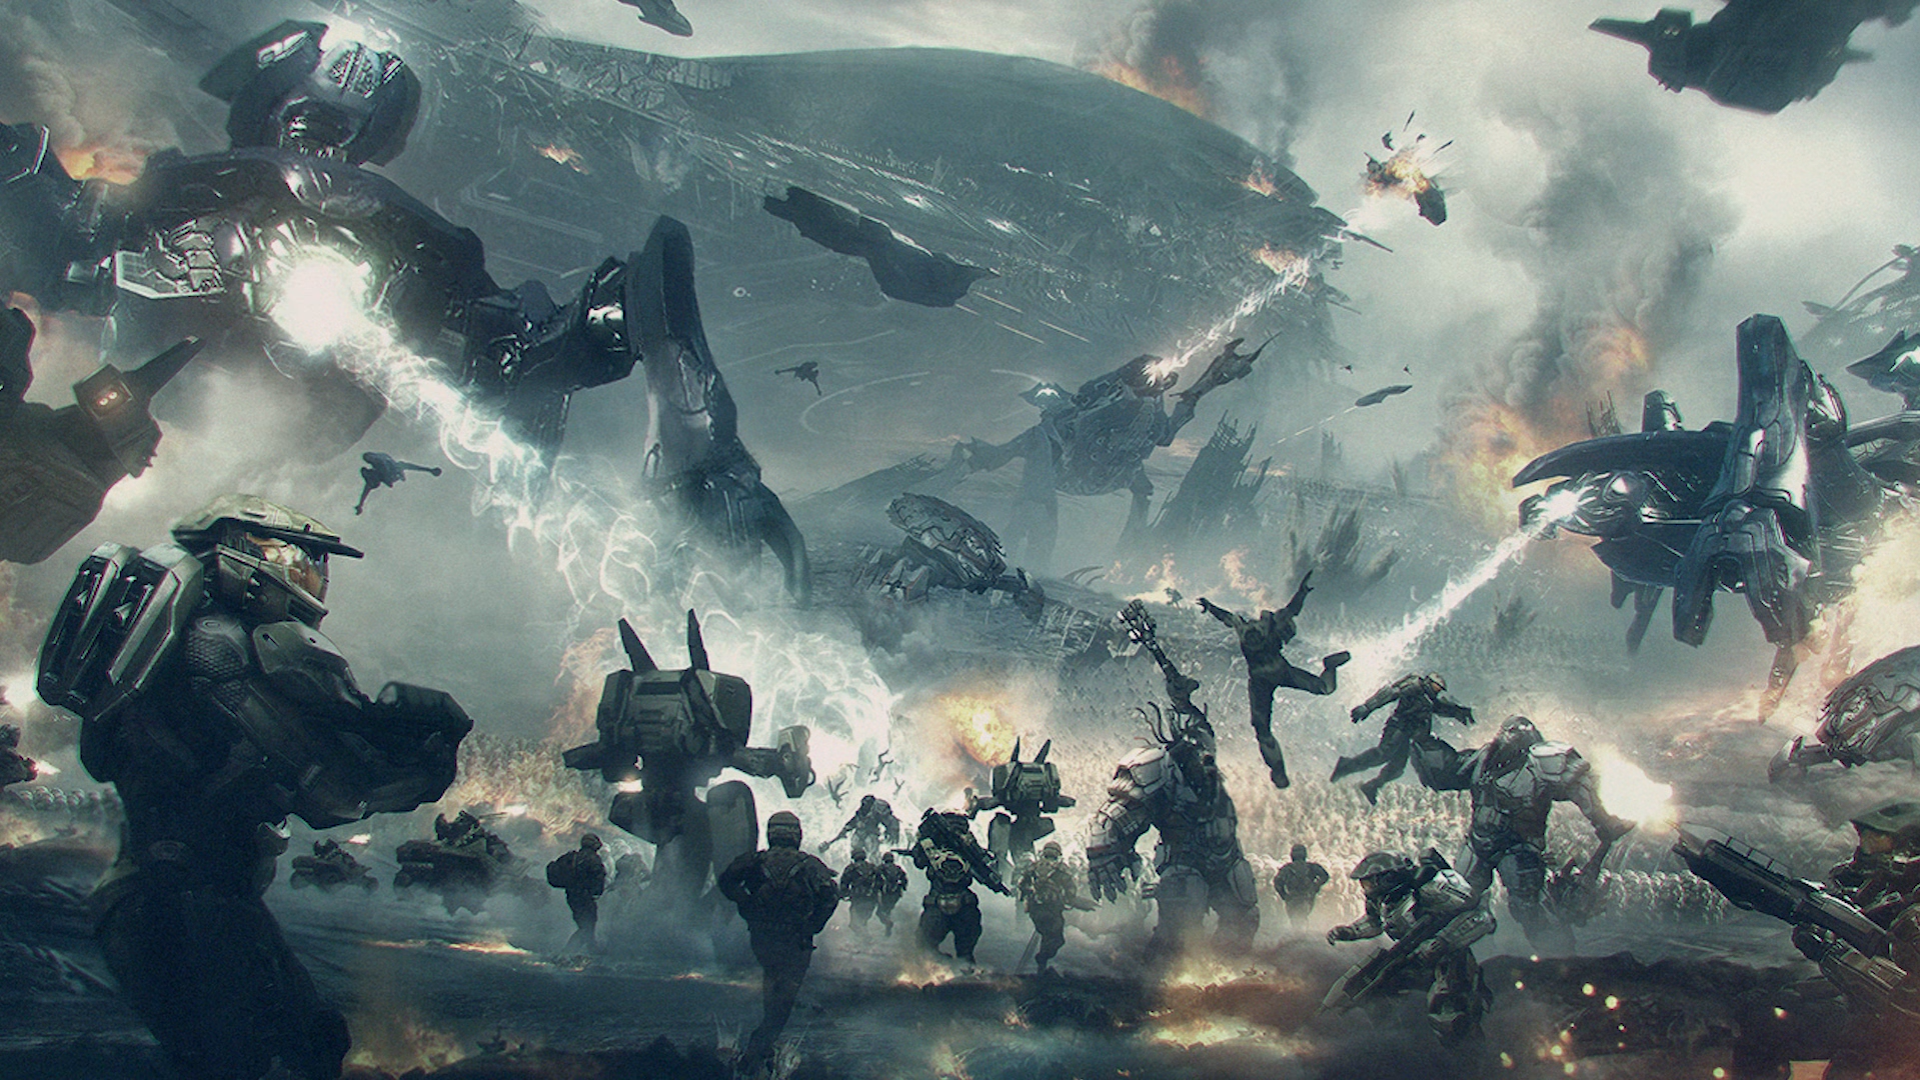 HD Halo Wars Wallpapers and Photos HD Games Wallpapers